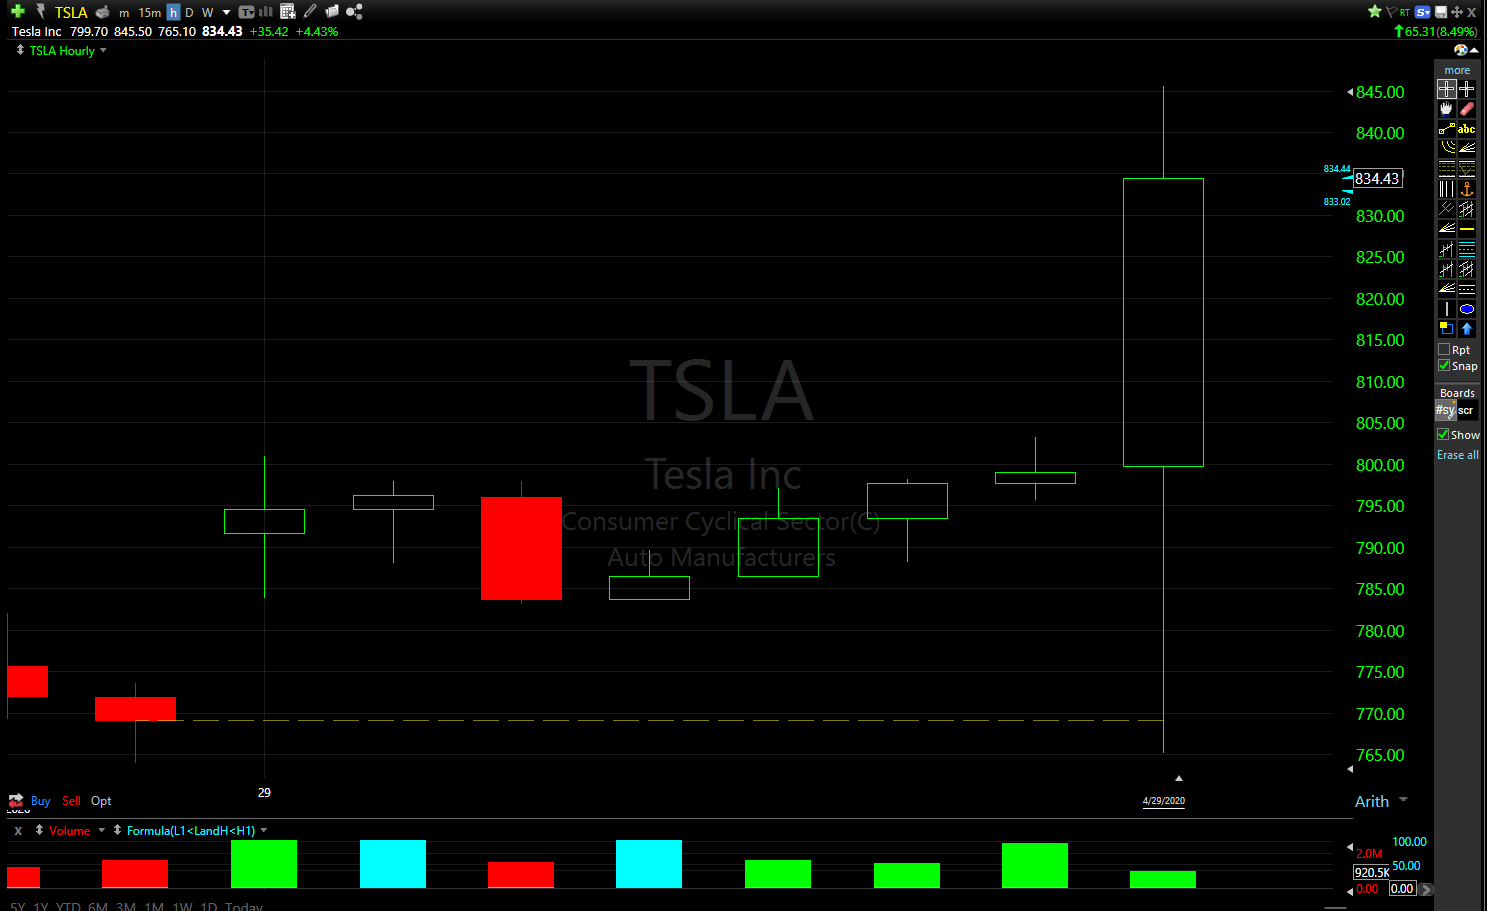 TSLA is currently trading at around $830/share in afterhours trading.